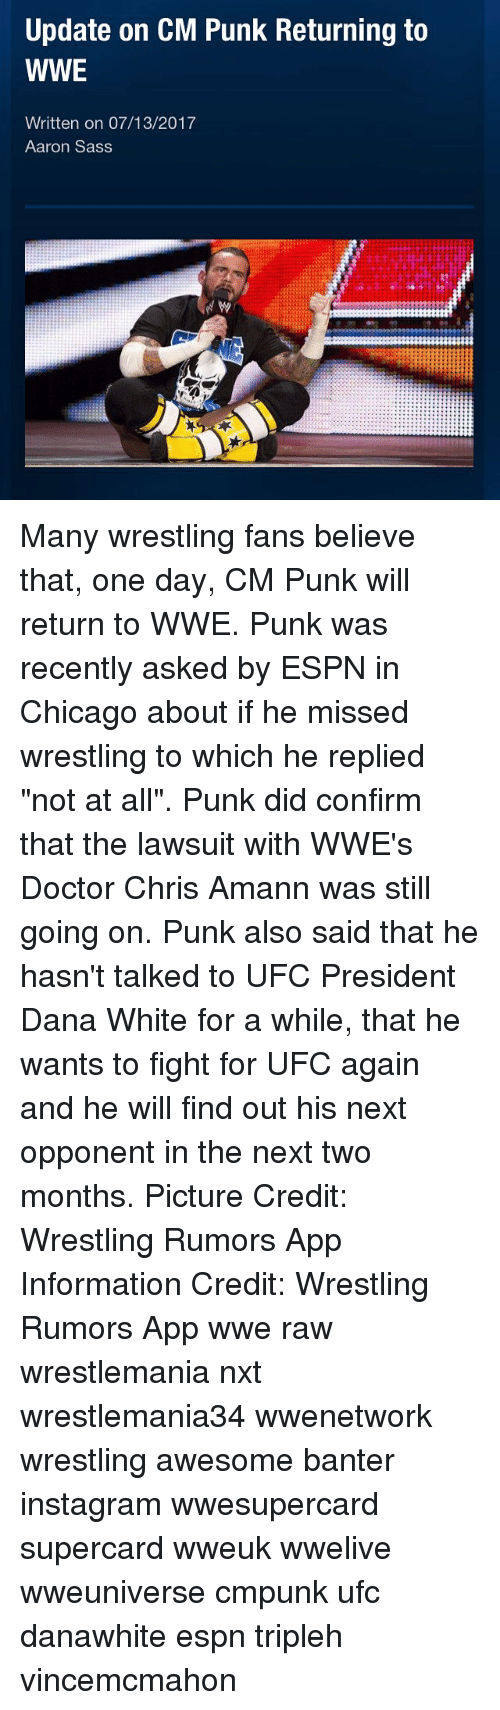 "Punked: Update on CM Punk Returning to  WWE  Written on 07/13/2017  Aaron Sass Many wrestling fans believe that, one day, CM Punk will return to WWE. Punk was recently asked by ESPN in Chicago about if he missed wrestling to which he replied ""not at all"". Punk did confirm that the lawsuit with WWE's Doctor Chris Amann was still going on. Punk also said that he hasn't talked to UFC President Dana White for a while, that he wants to fight for UFC again and he will find out his next opponent in the next two months. Picture Credit: Wrestling Rumors App Information Credit: Wrestling Rumors App wwe raw wrestlemania nxt wrestlemania34 wwenetwork wrestling awesome banter instagram wwesupercard supercard wweuk wwelive wweuniverse cmpunk ufc danawhite espn tripleh vincemcmahon"